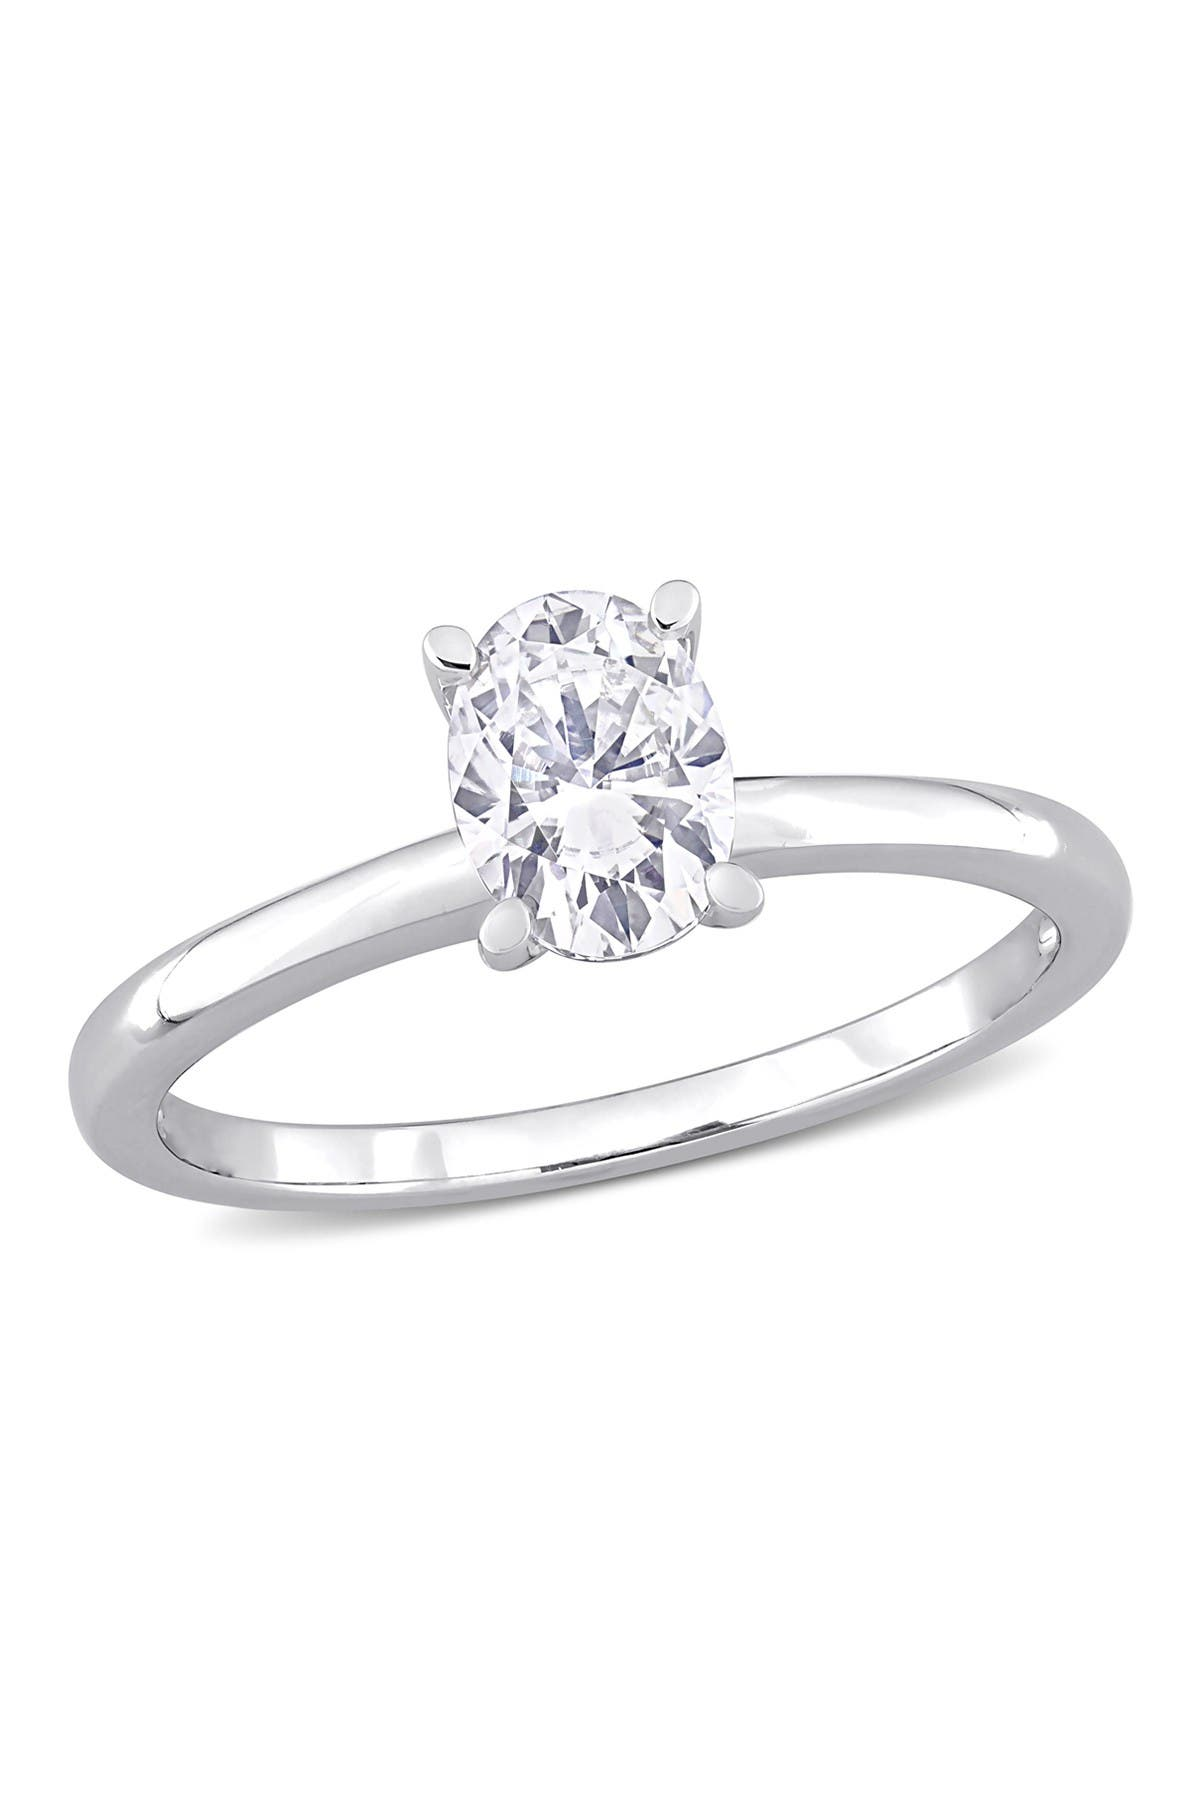 Image of Delmar Sterling Silver Created 1ctw Oval Moissanite Solitaire Engagement Ring